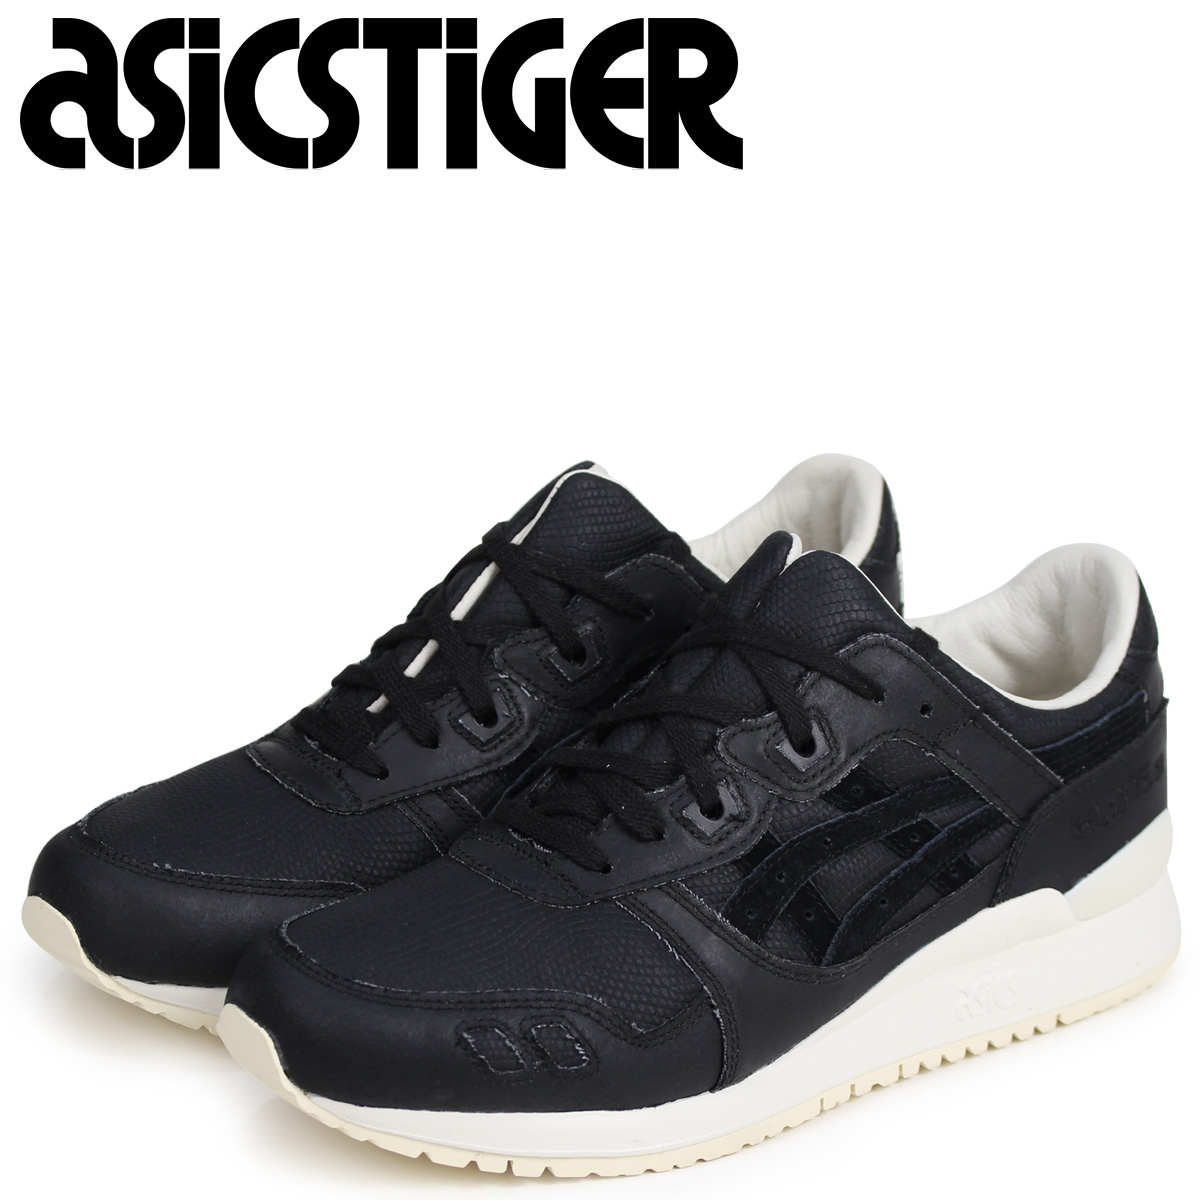 moins cher 254ea c49a4 asics Tiger ASICS tiger gel light 3 sneakers GEL-LYTE III H842N-9090 men  black black